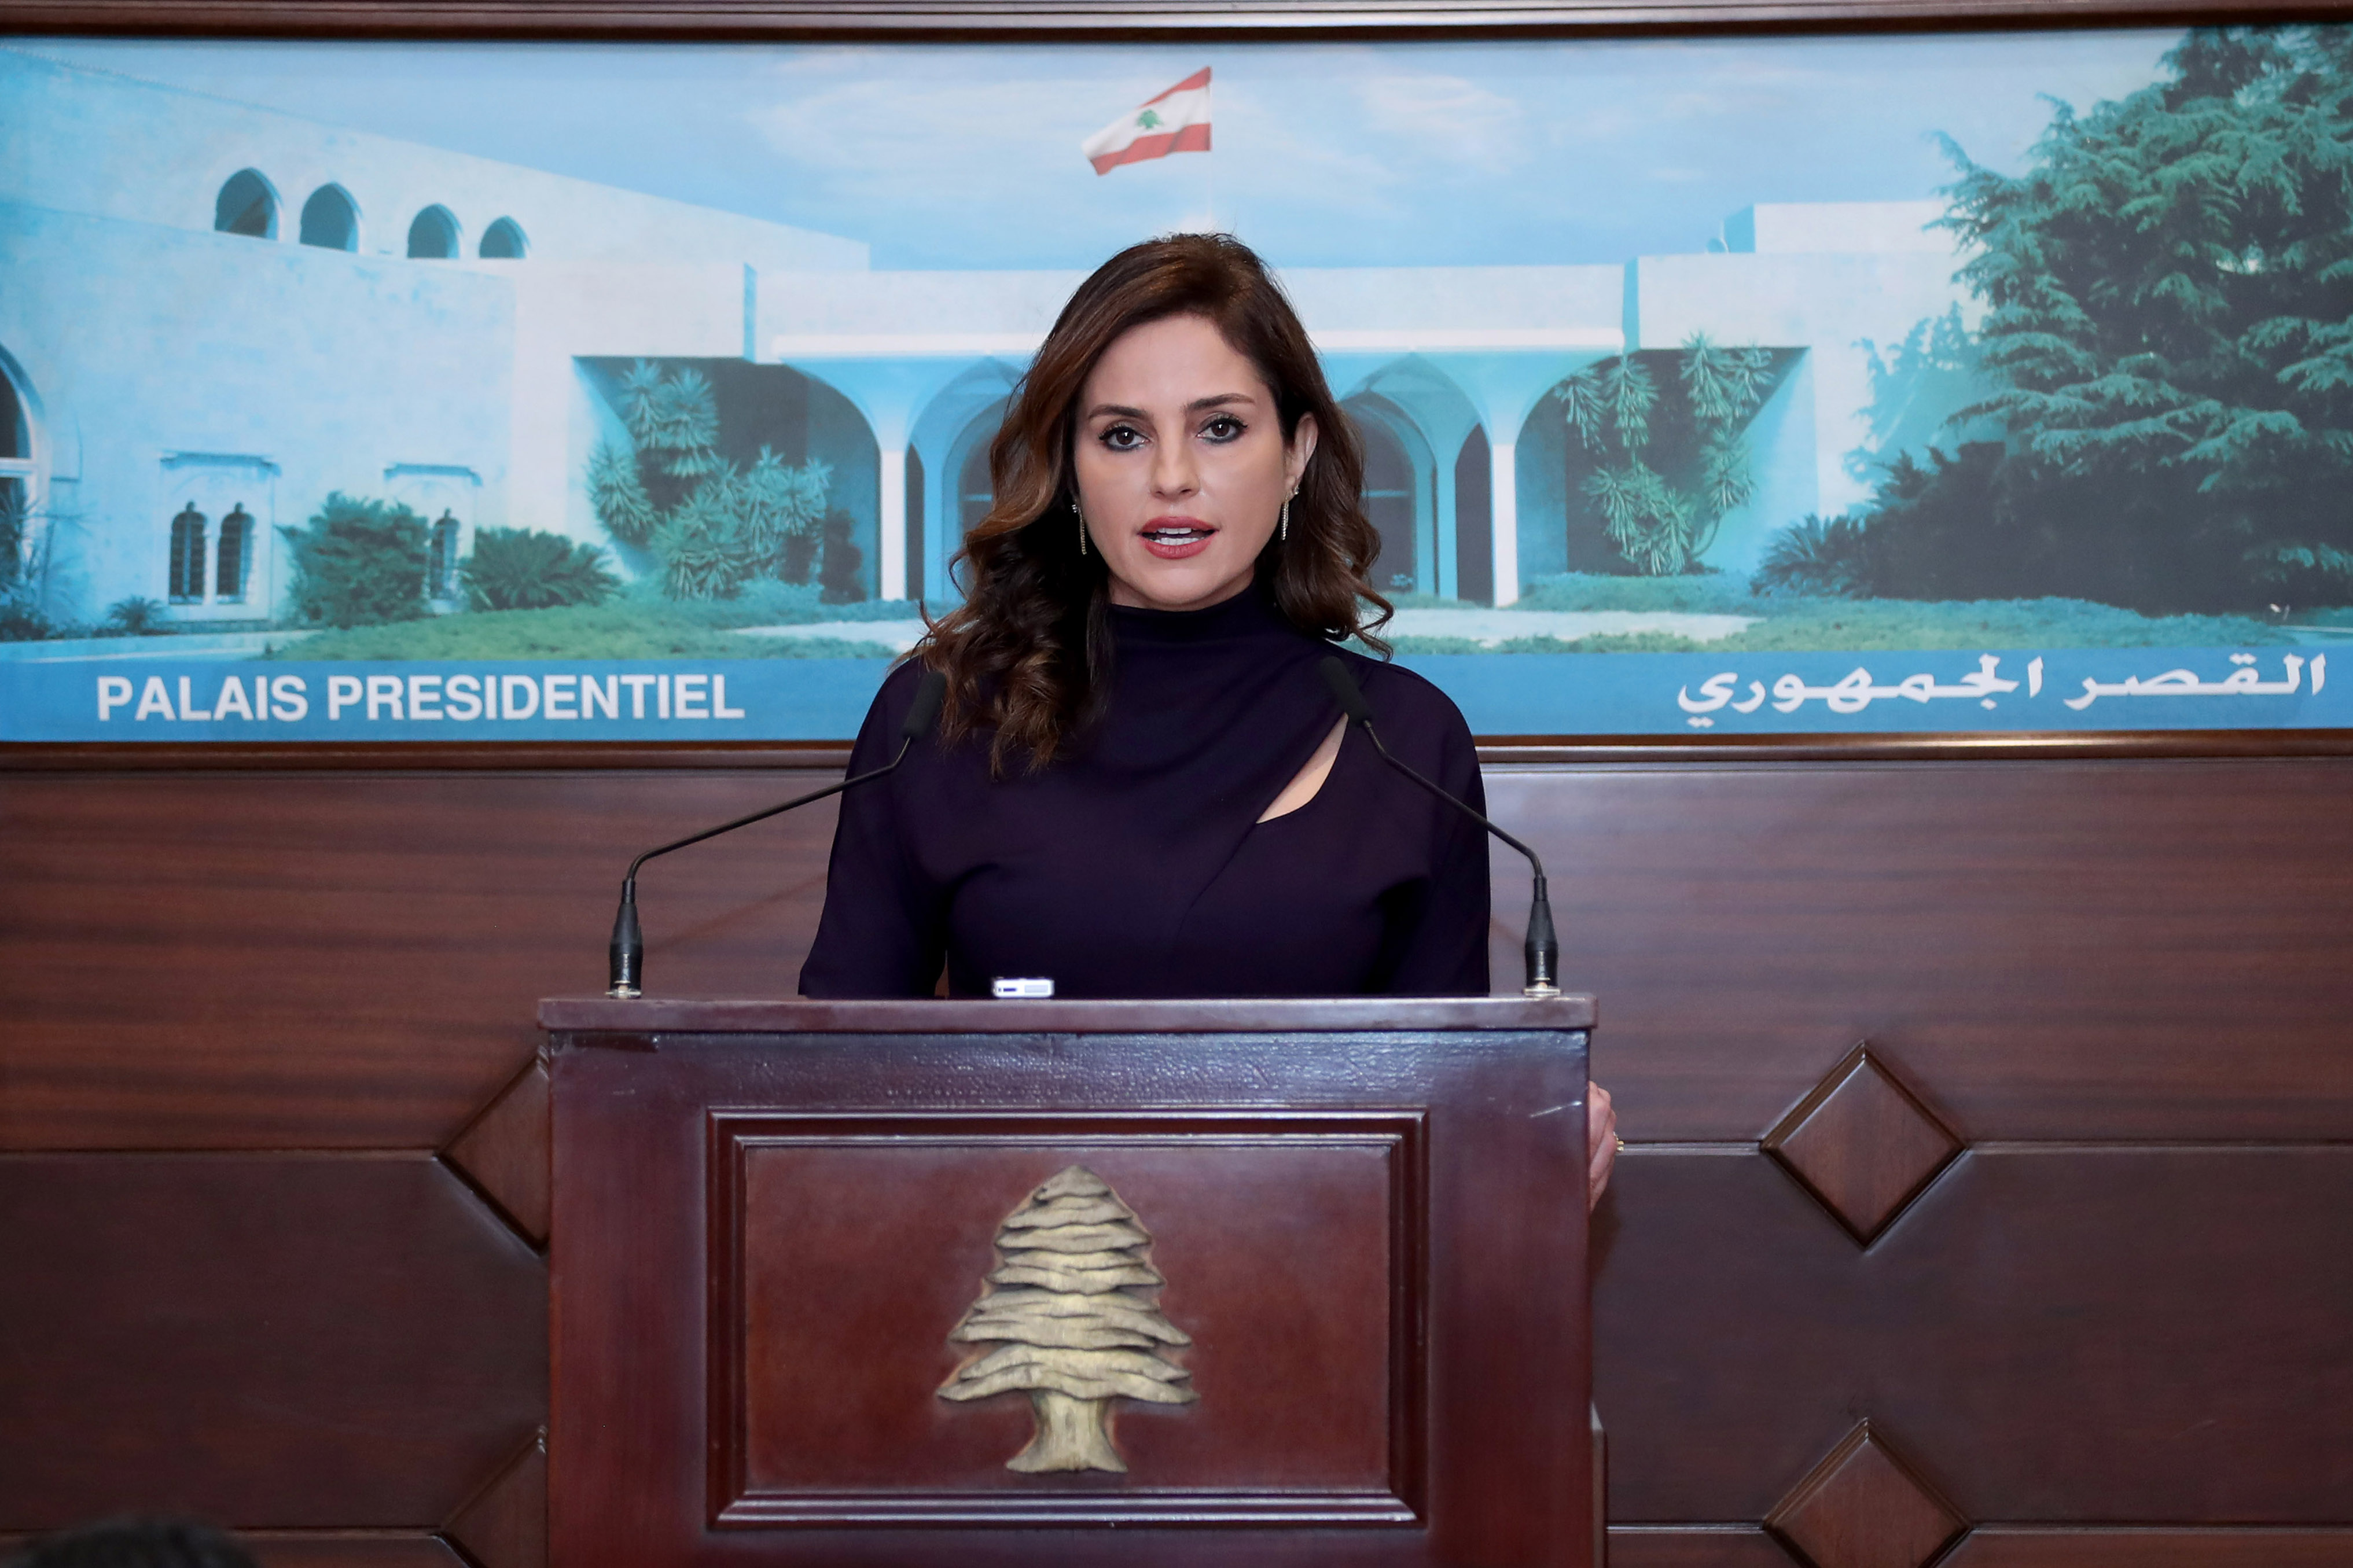 4 - Ministerial Council 2